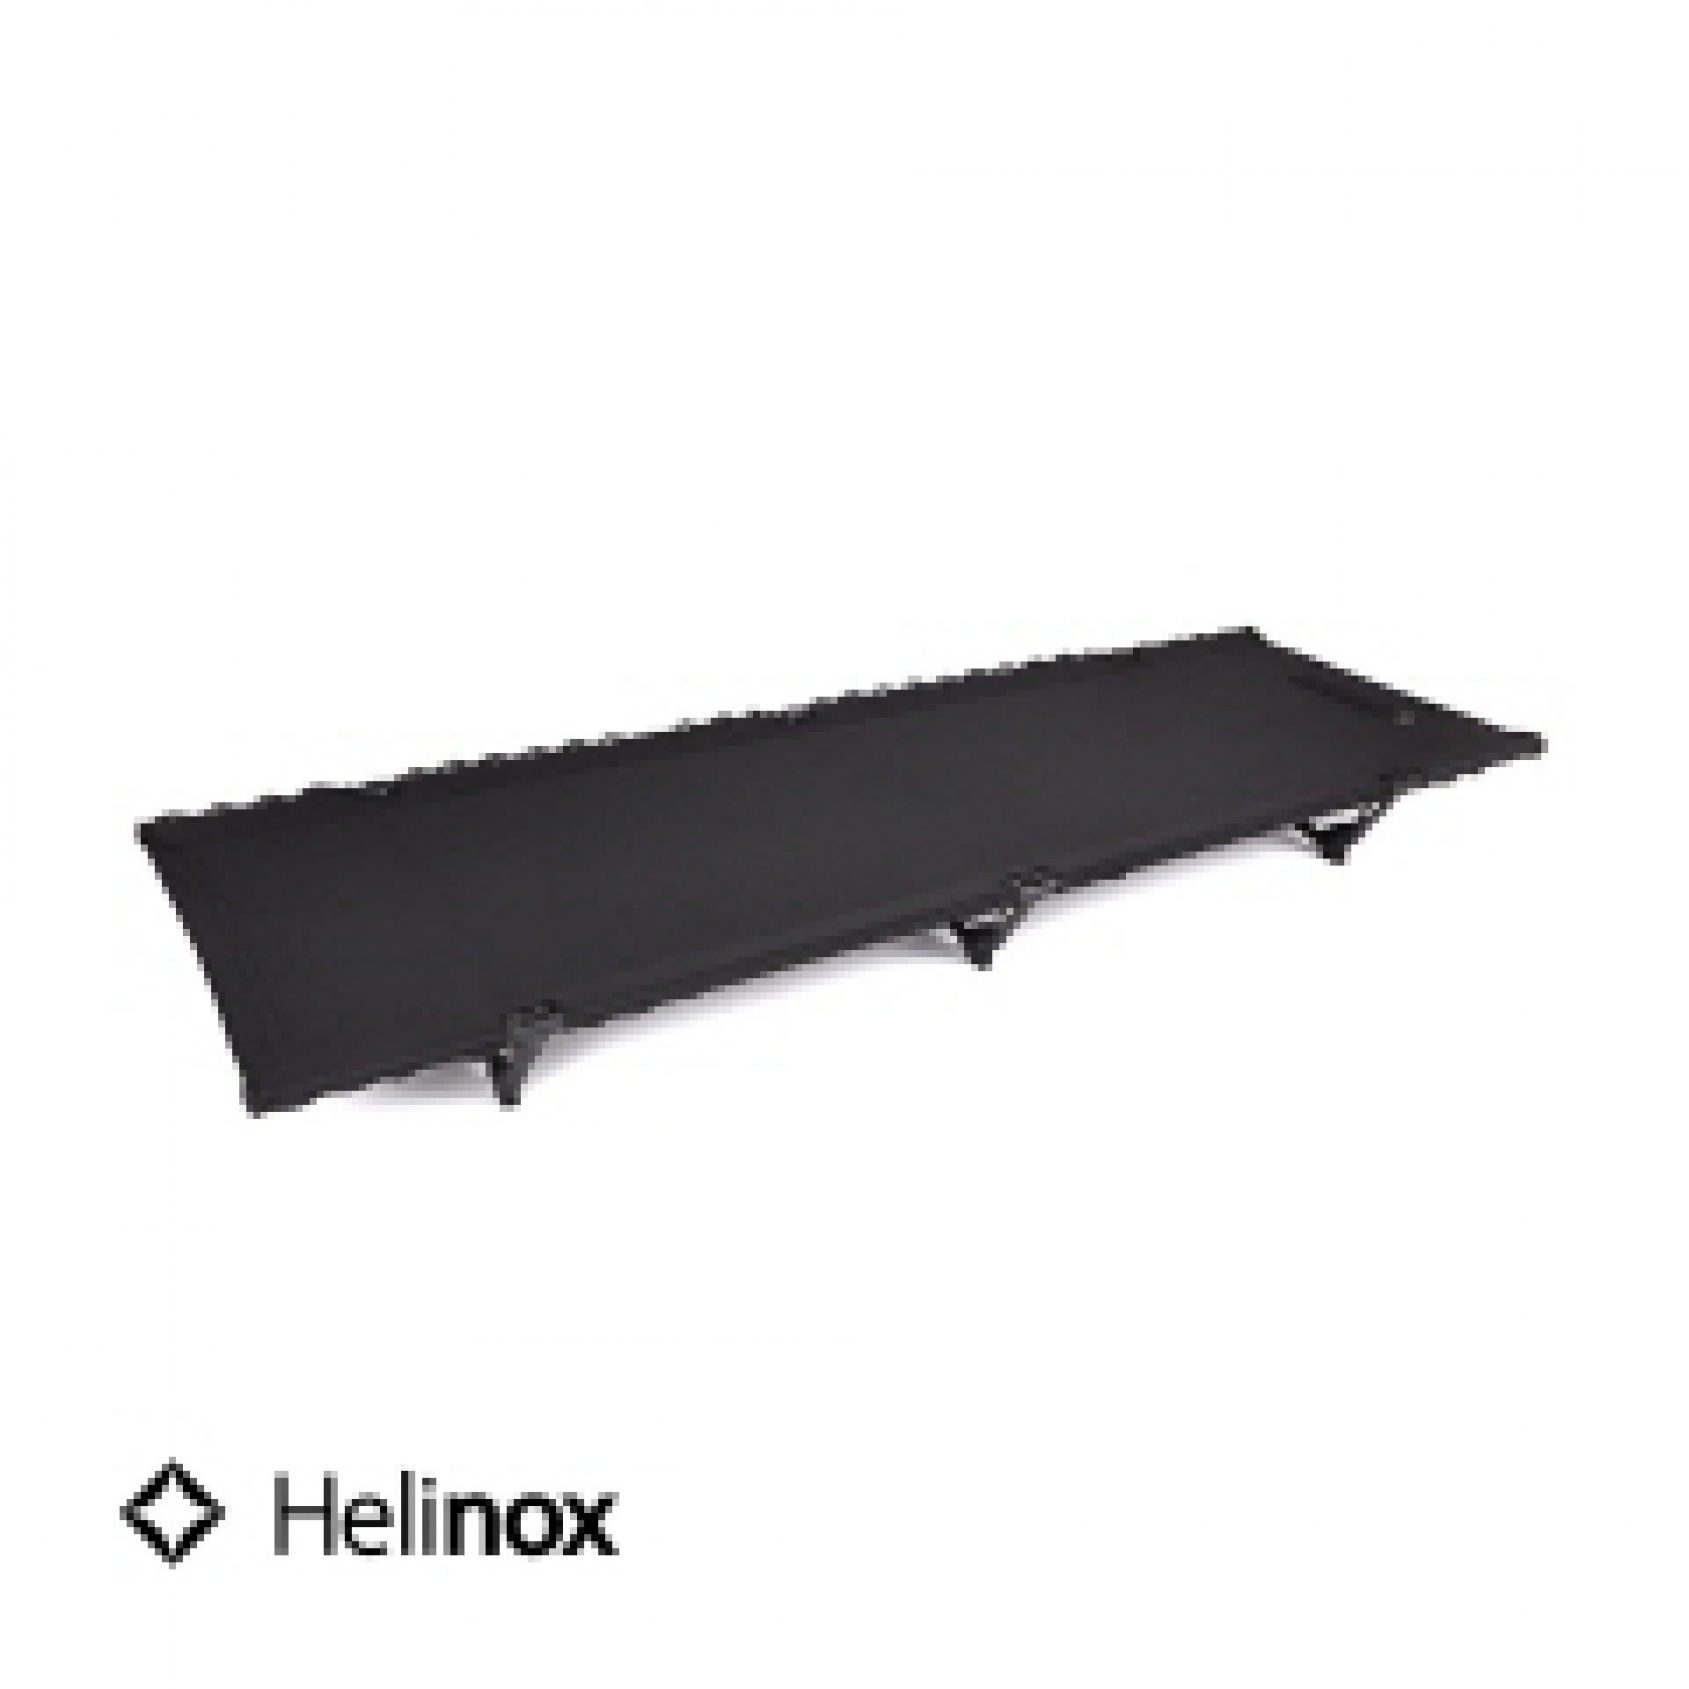 เตียงพับ Helinox Tactical Cot Convertible #สี Black